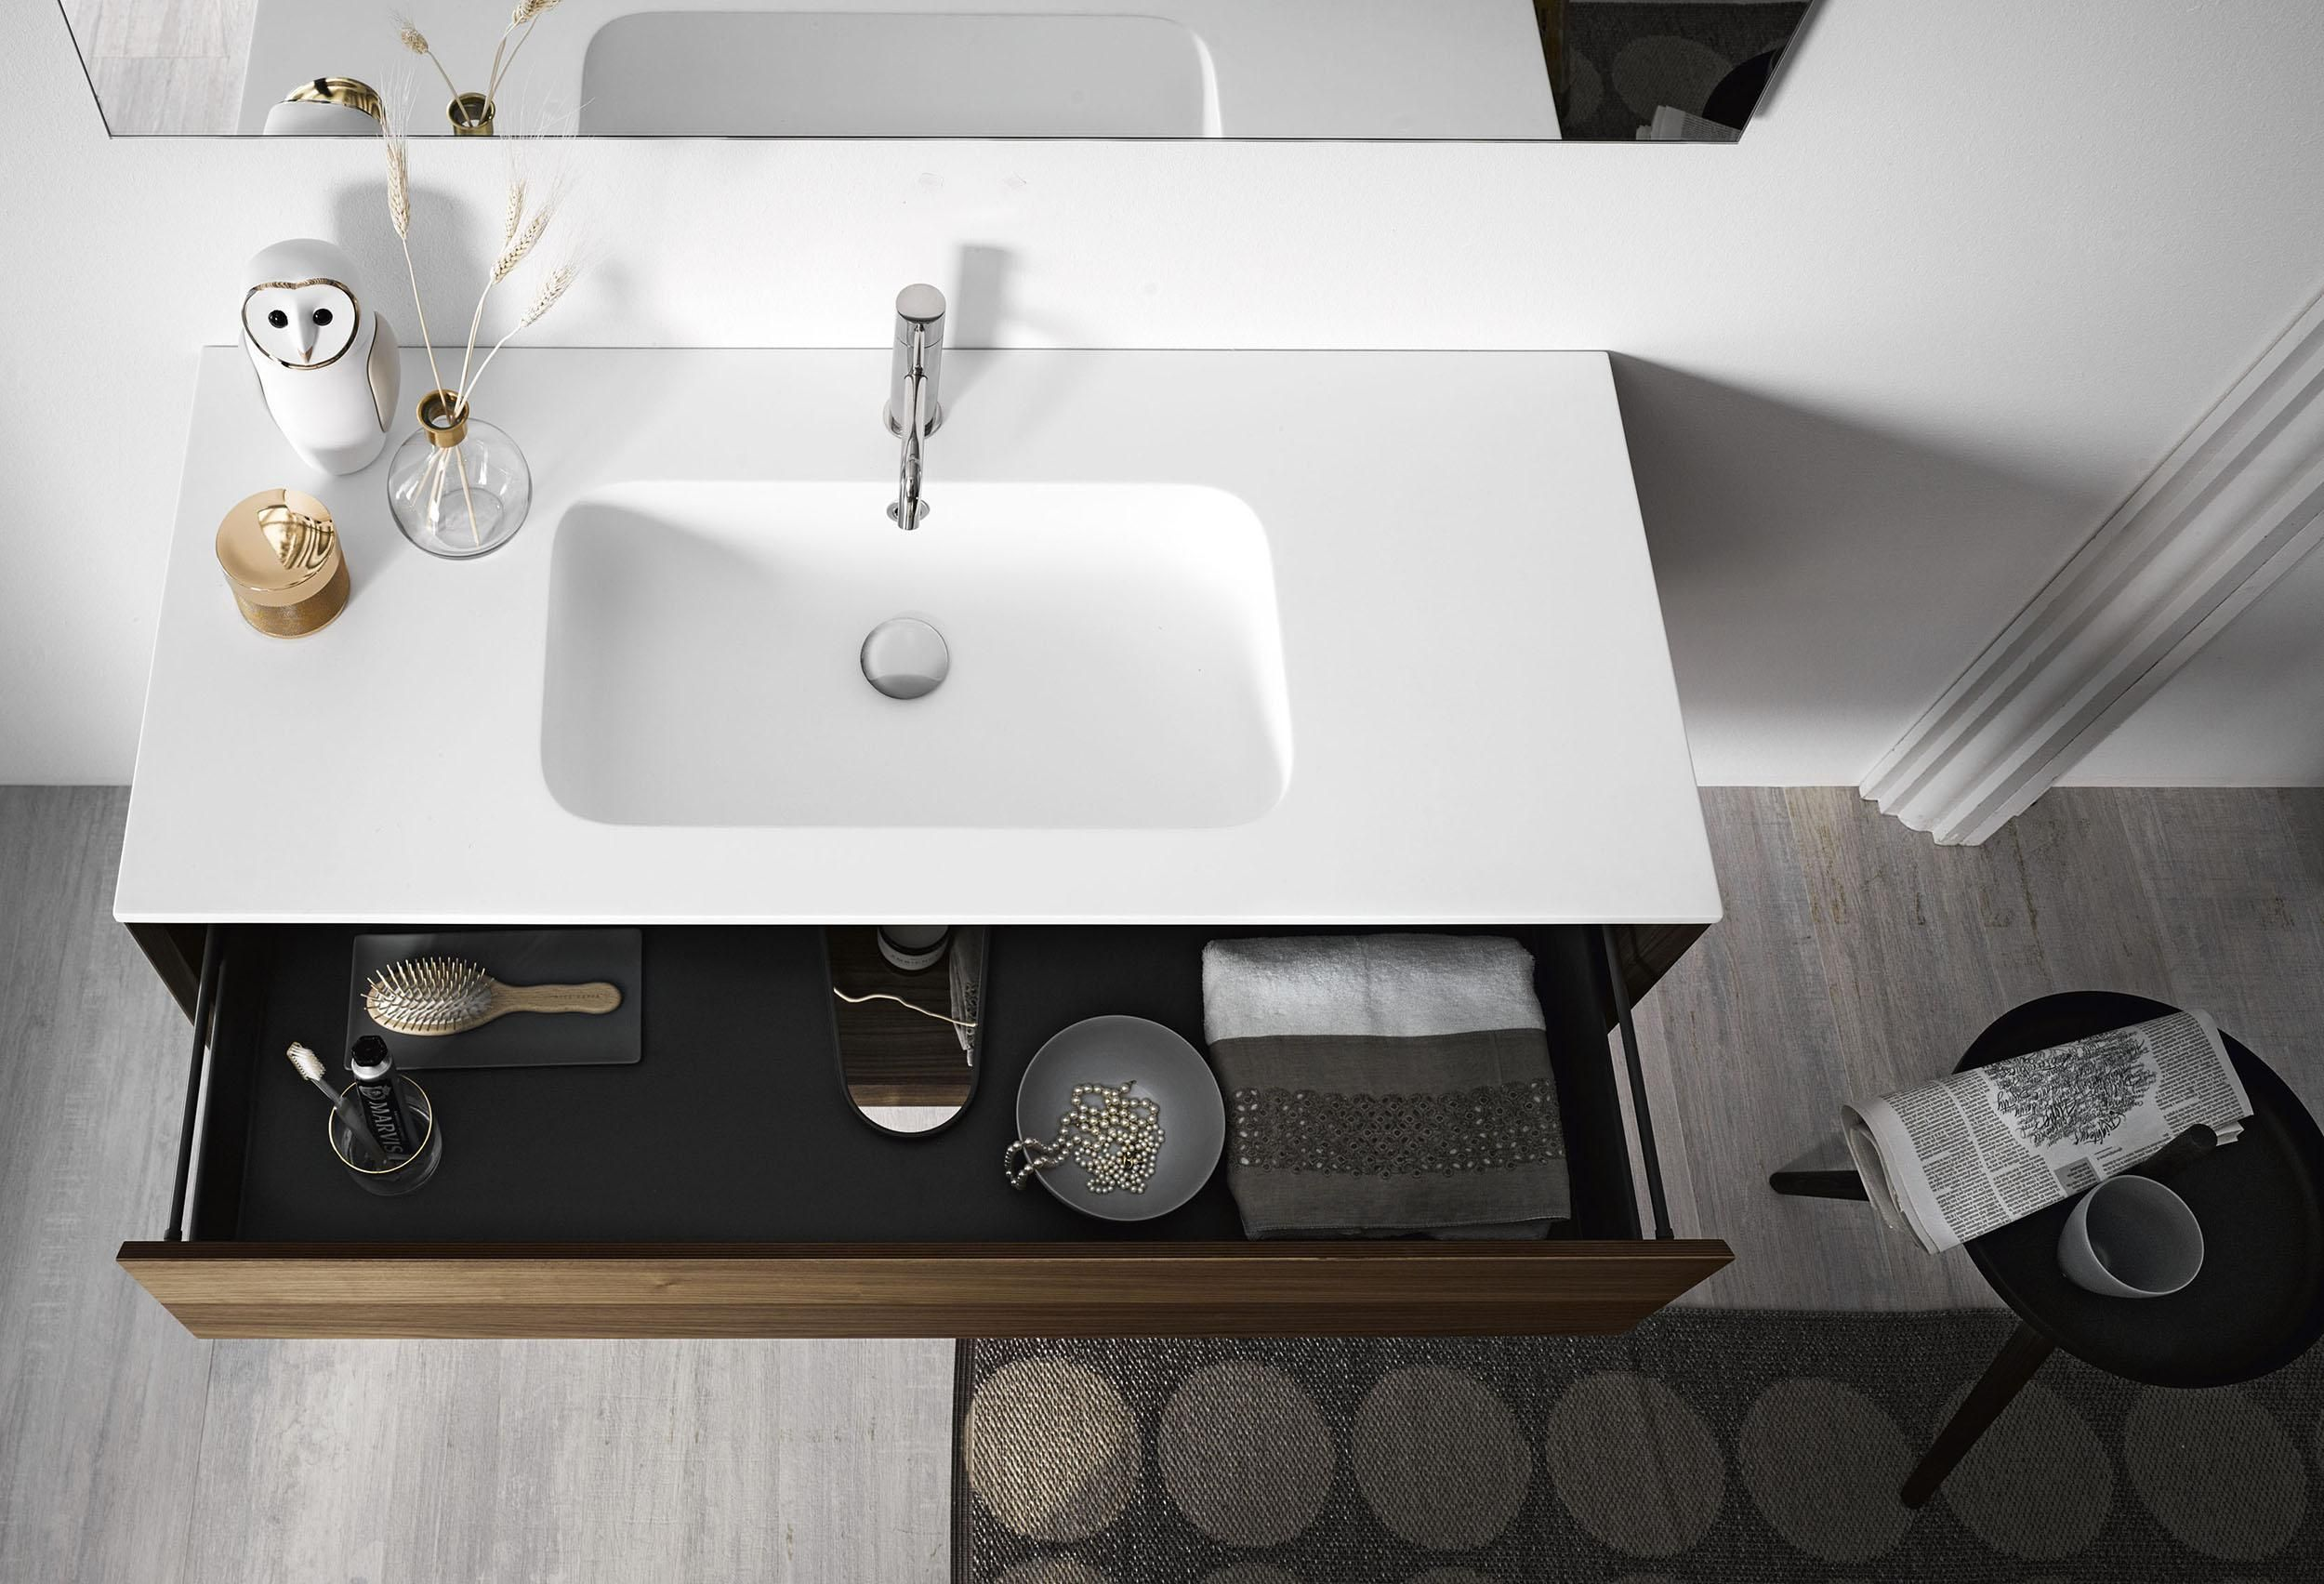 Iks | Tailormade Stocco | BAÑO | Pinterest